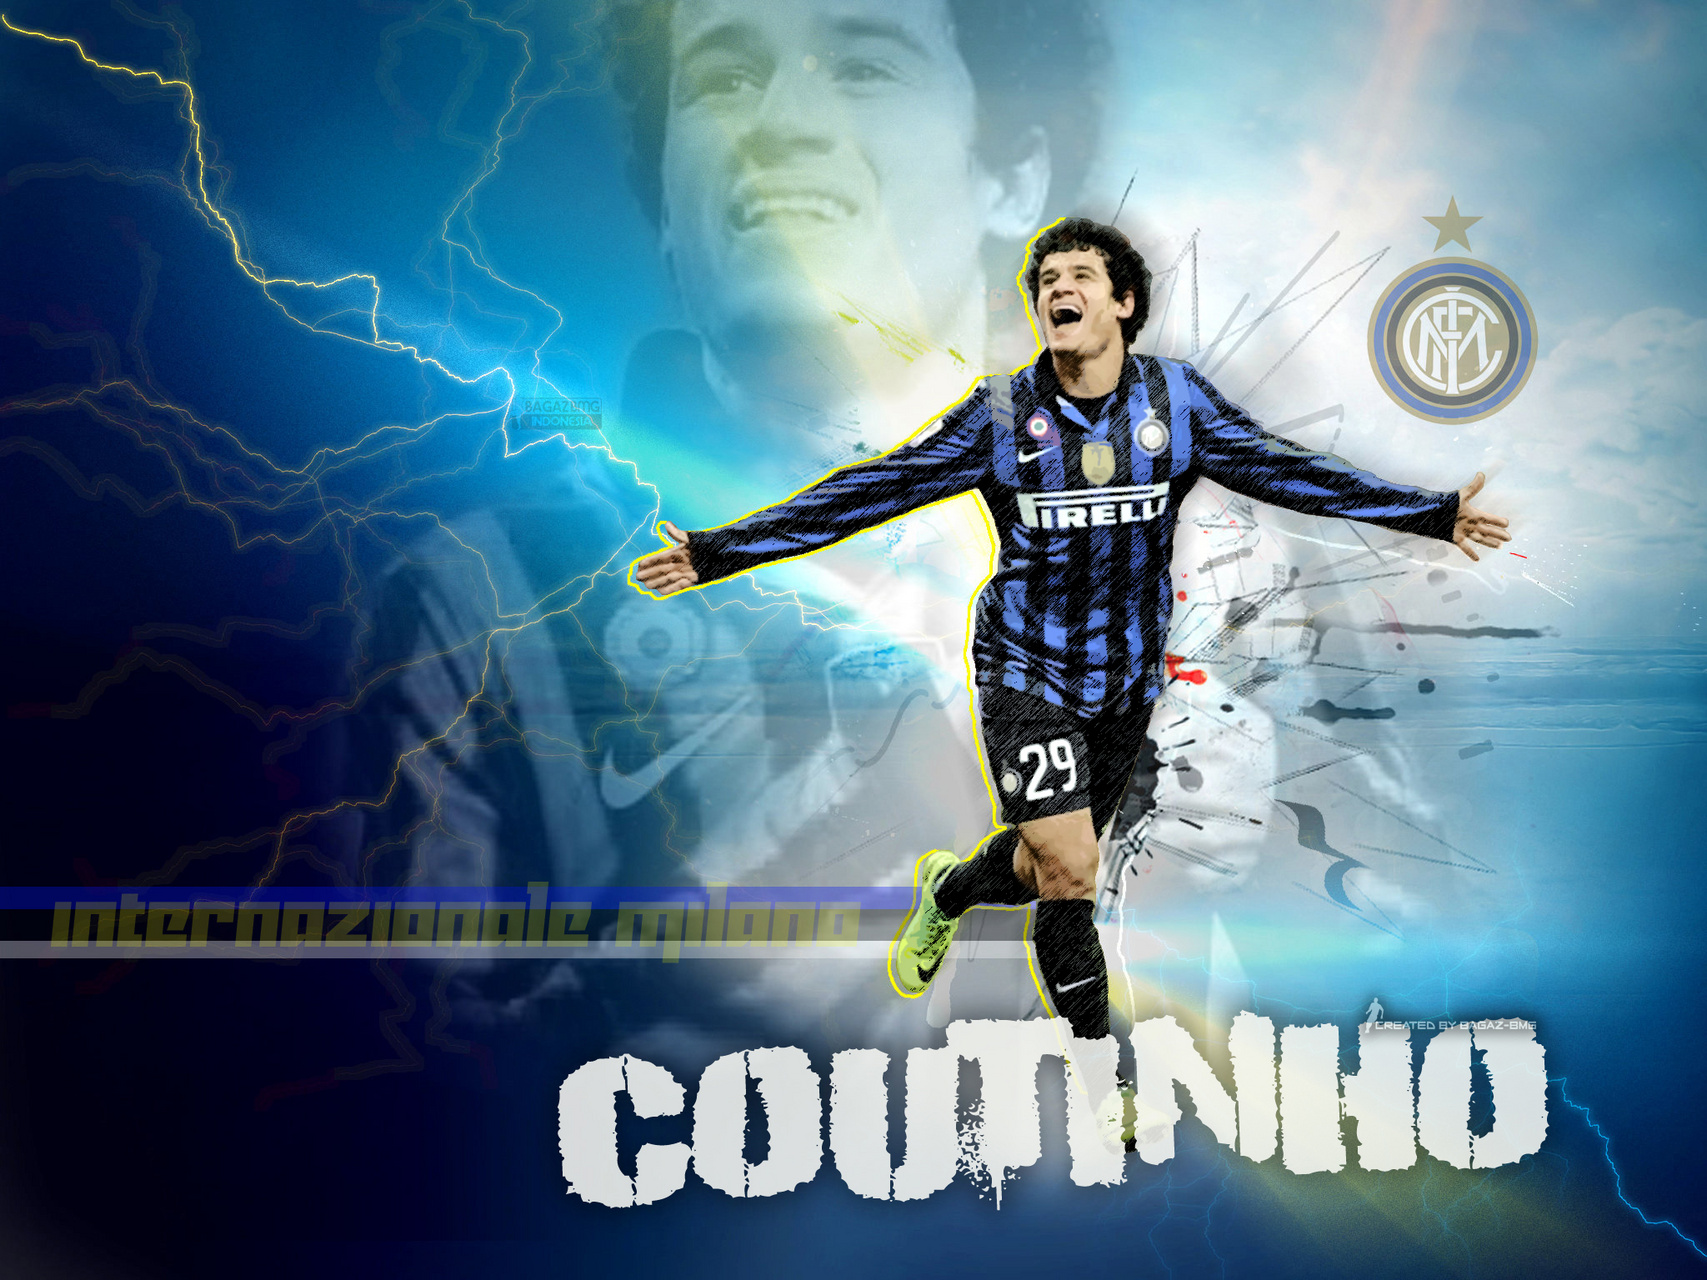 Philippe Coutinho Football Wallpaper, Backgrounds and Picture.